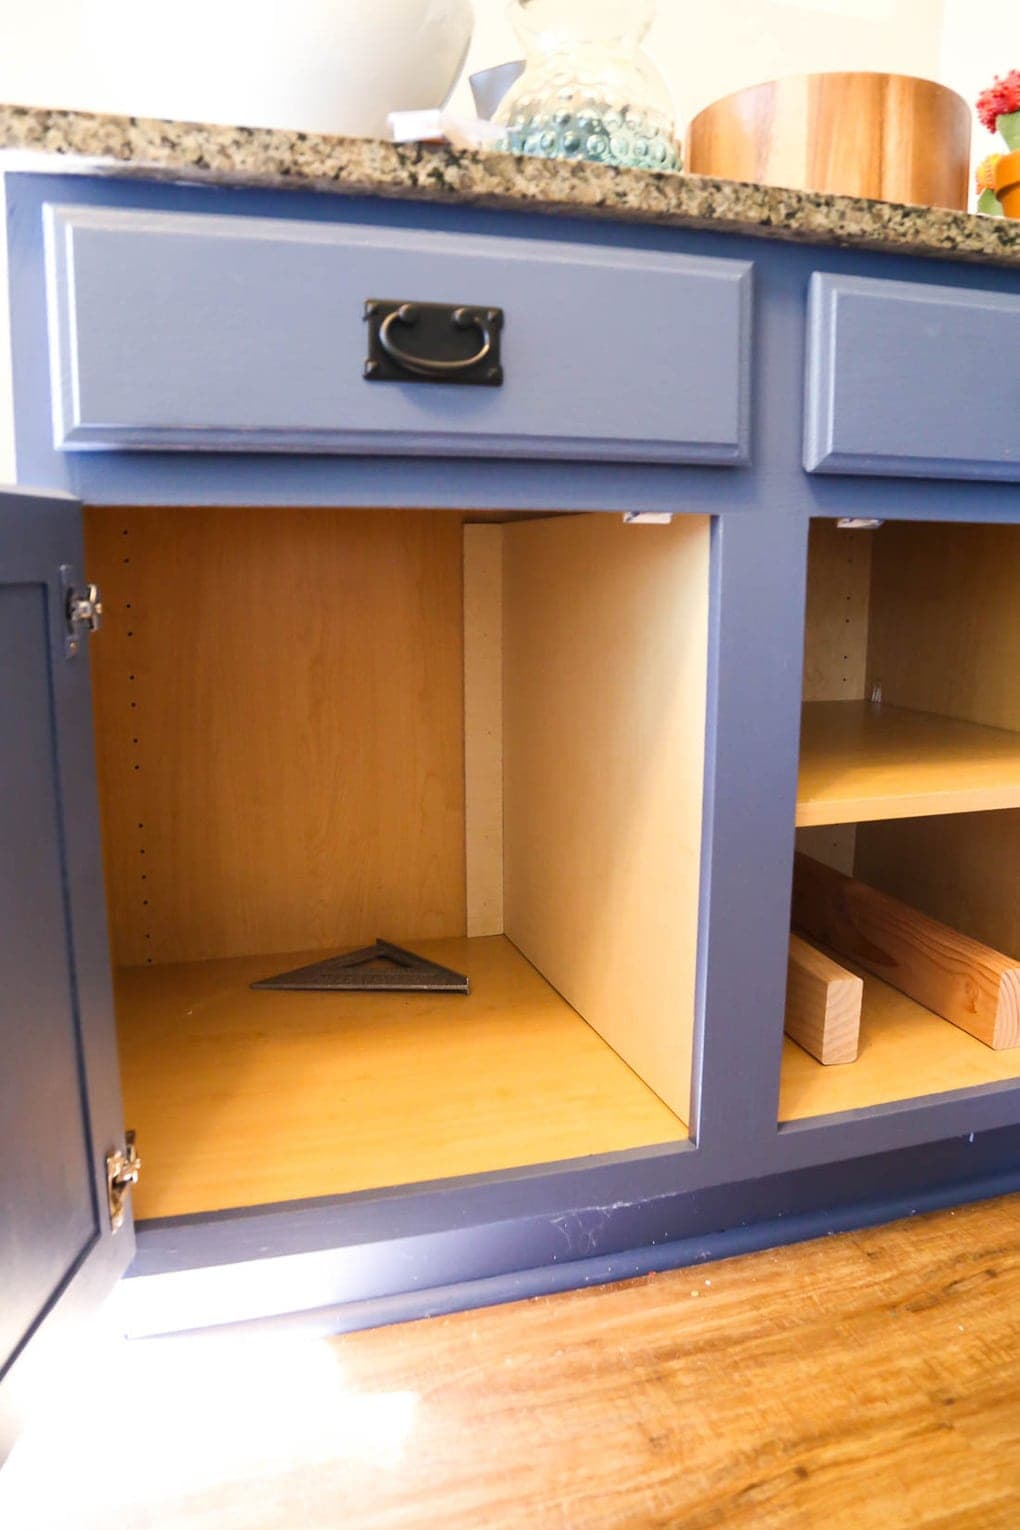 Cabinet with a hidden trash can